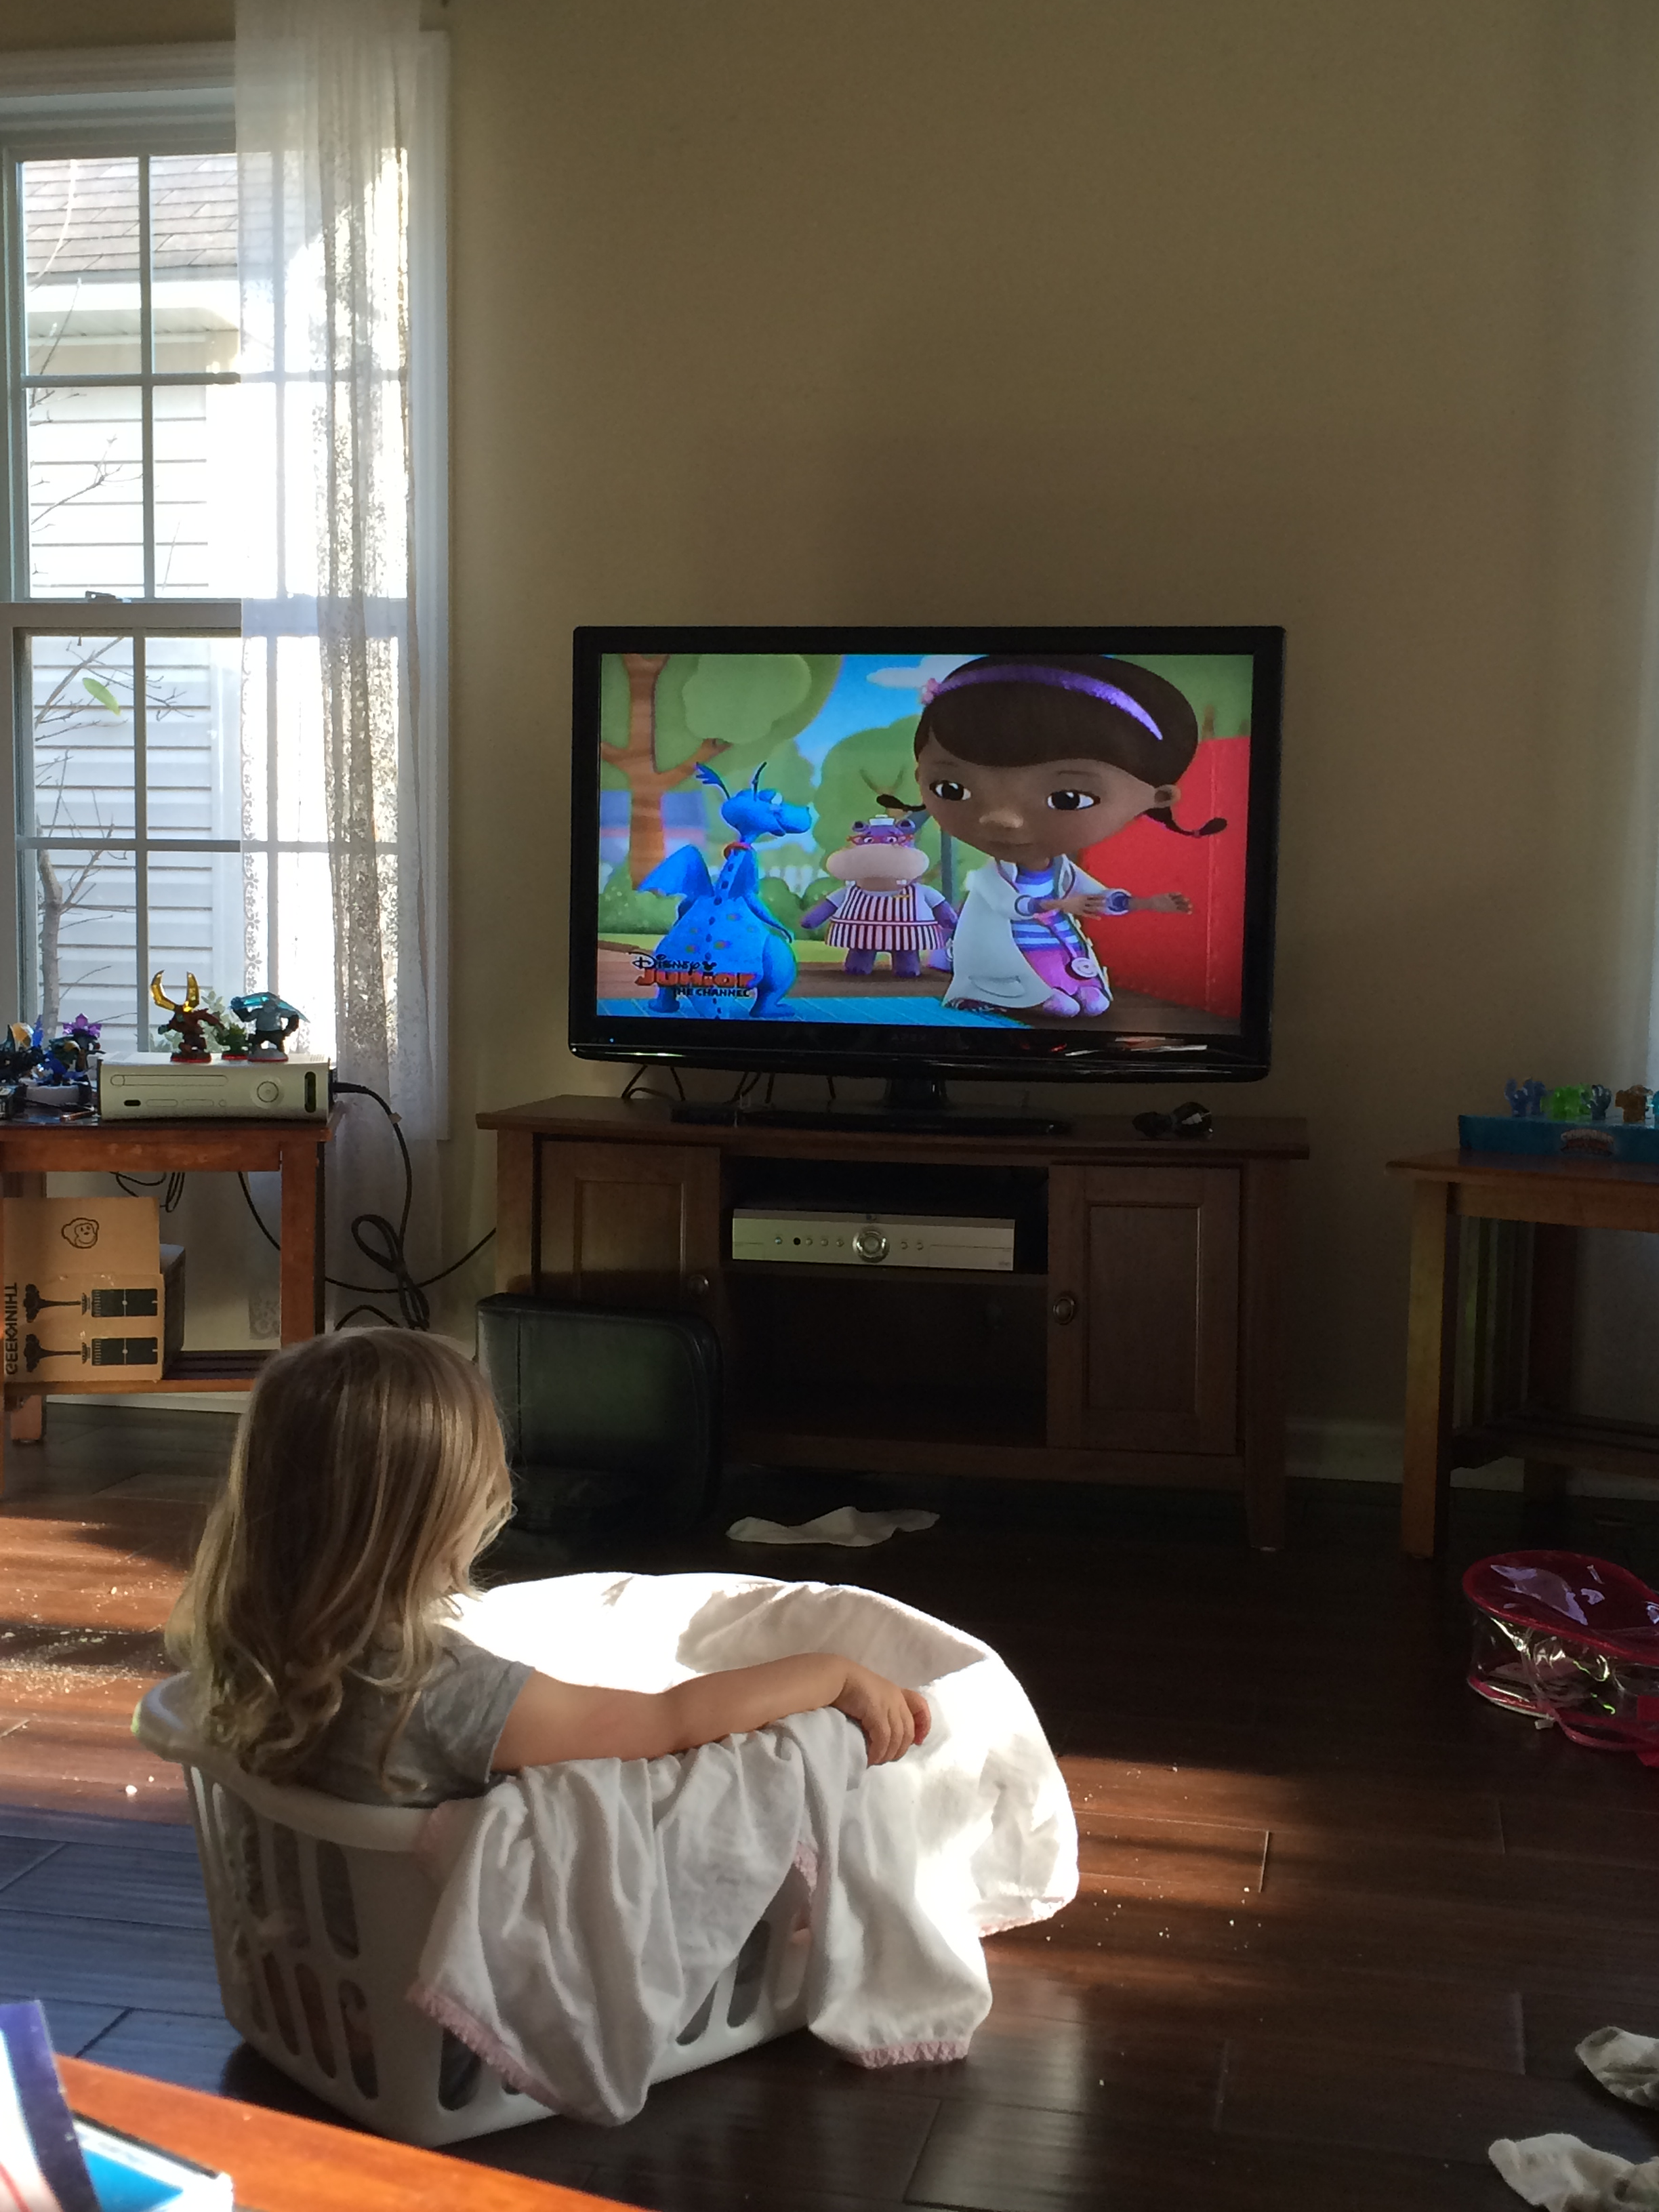 Wordless Wednesday: Can't Hide Her #DisneySide